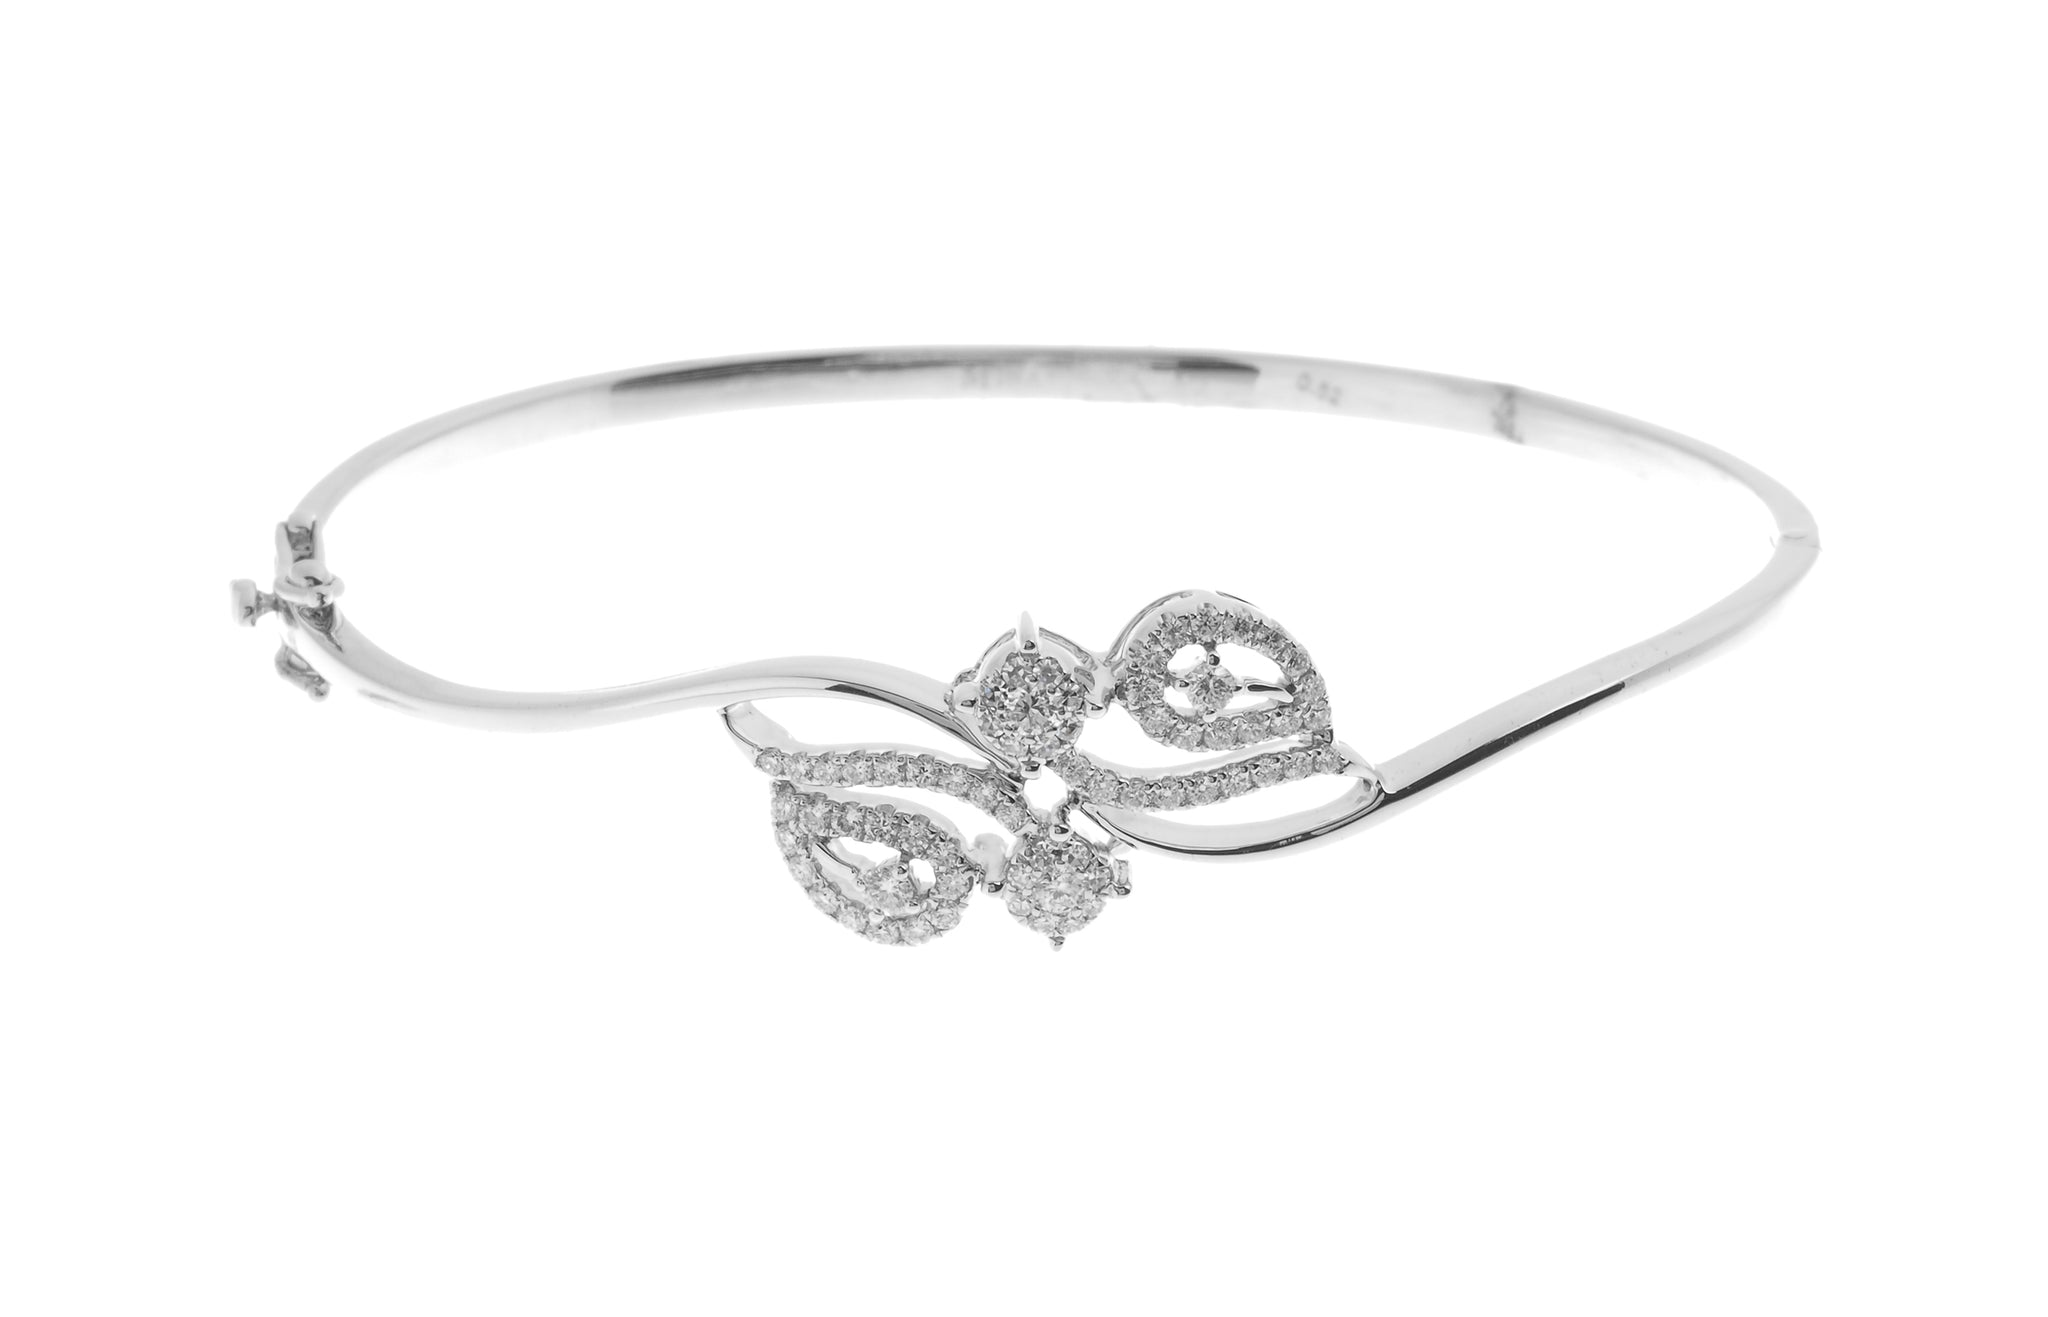 18ct White Gold Diamond Bangle with clasp (MCS2723) - Single